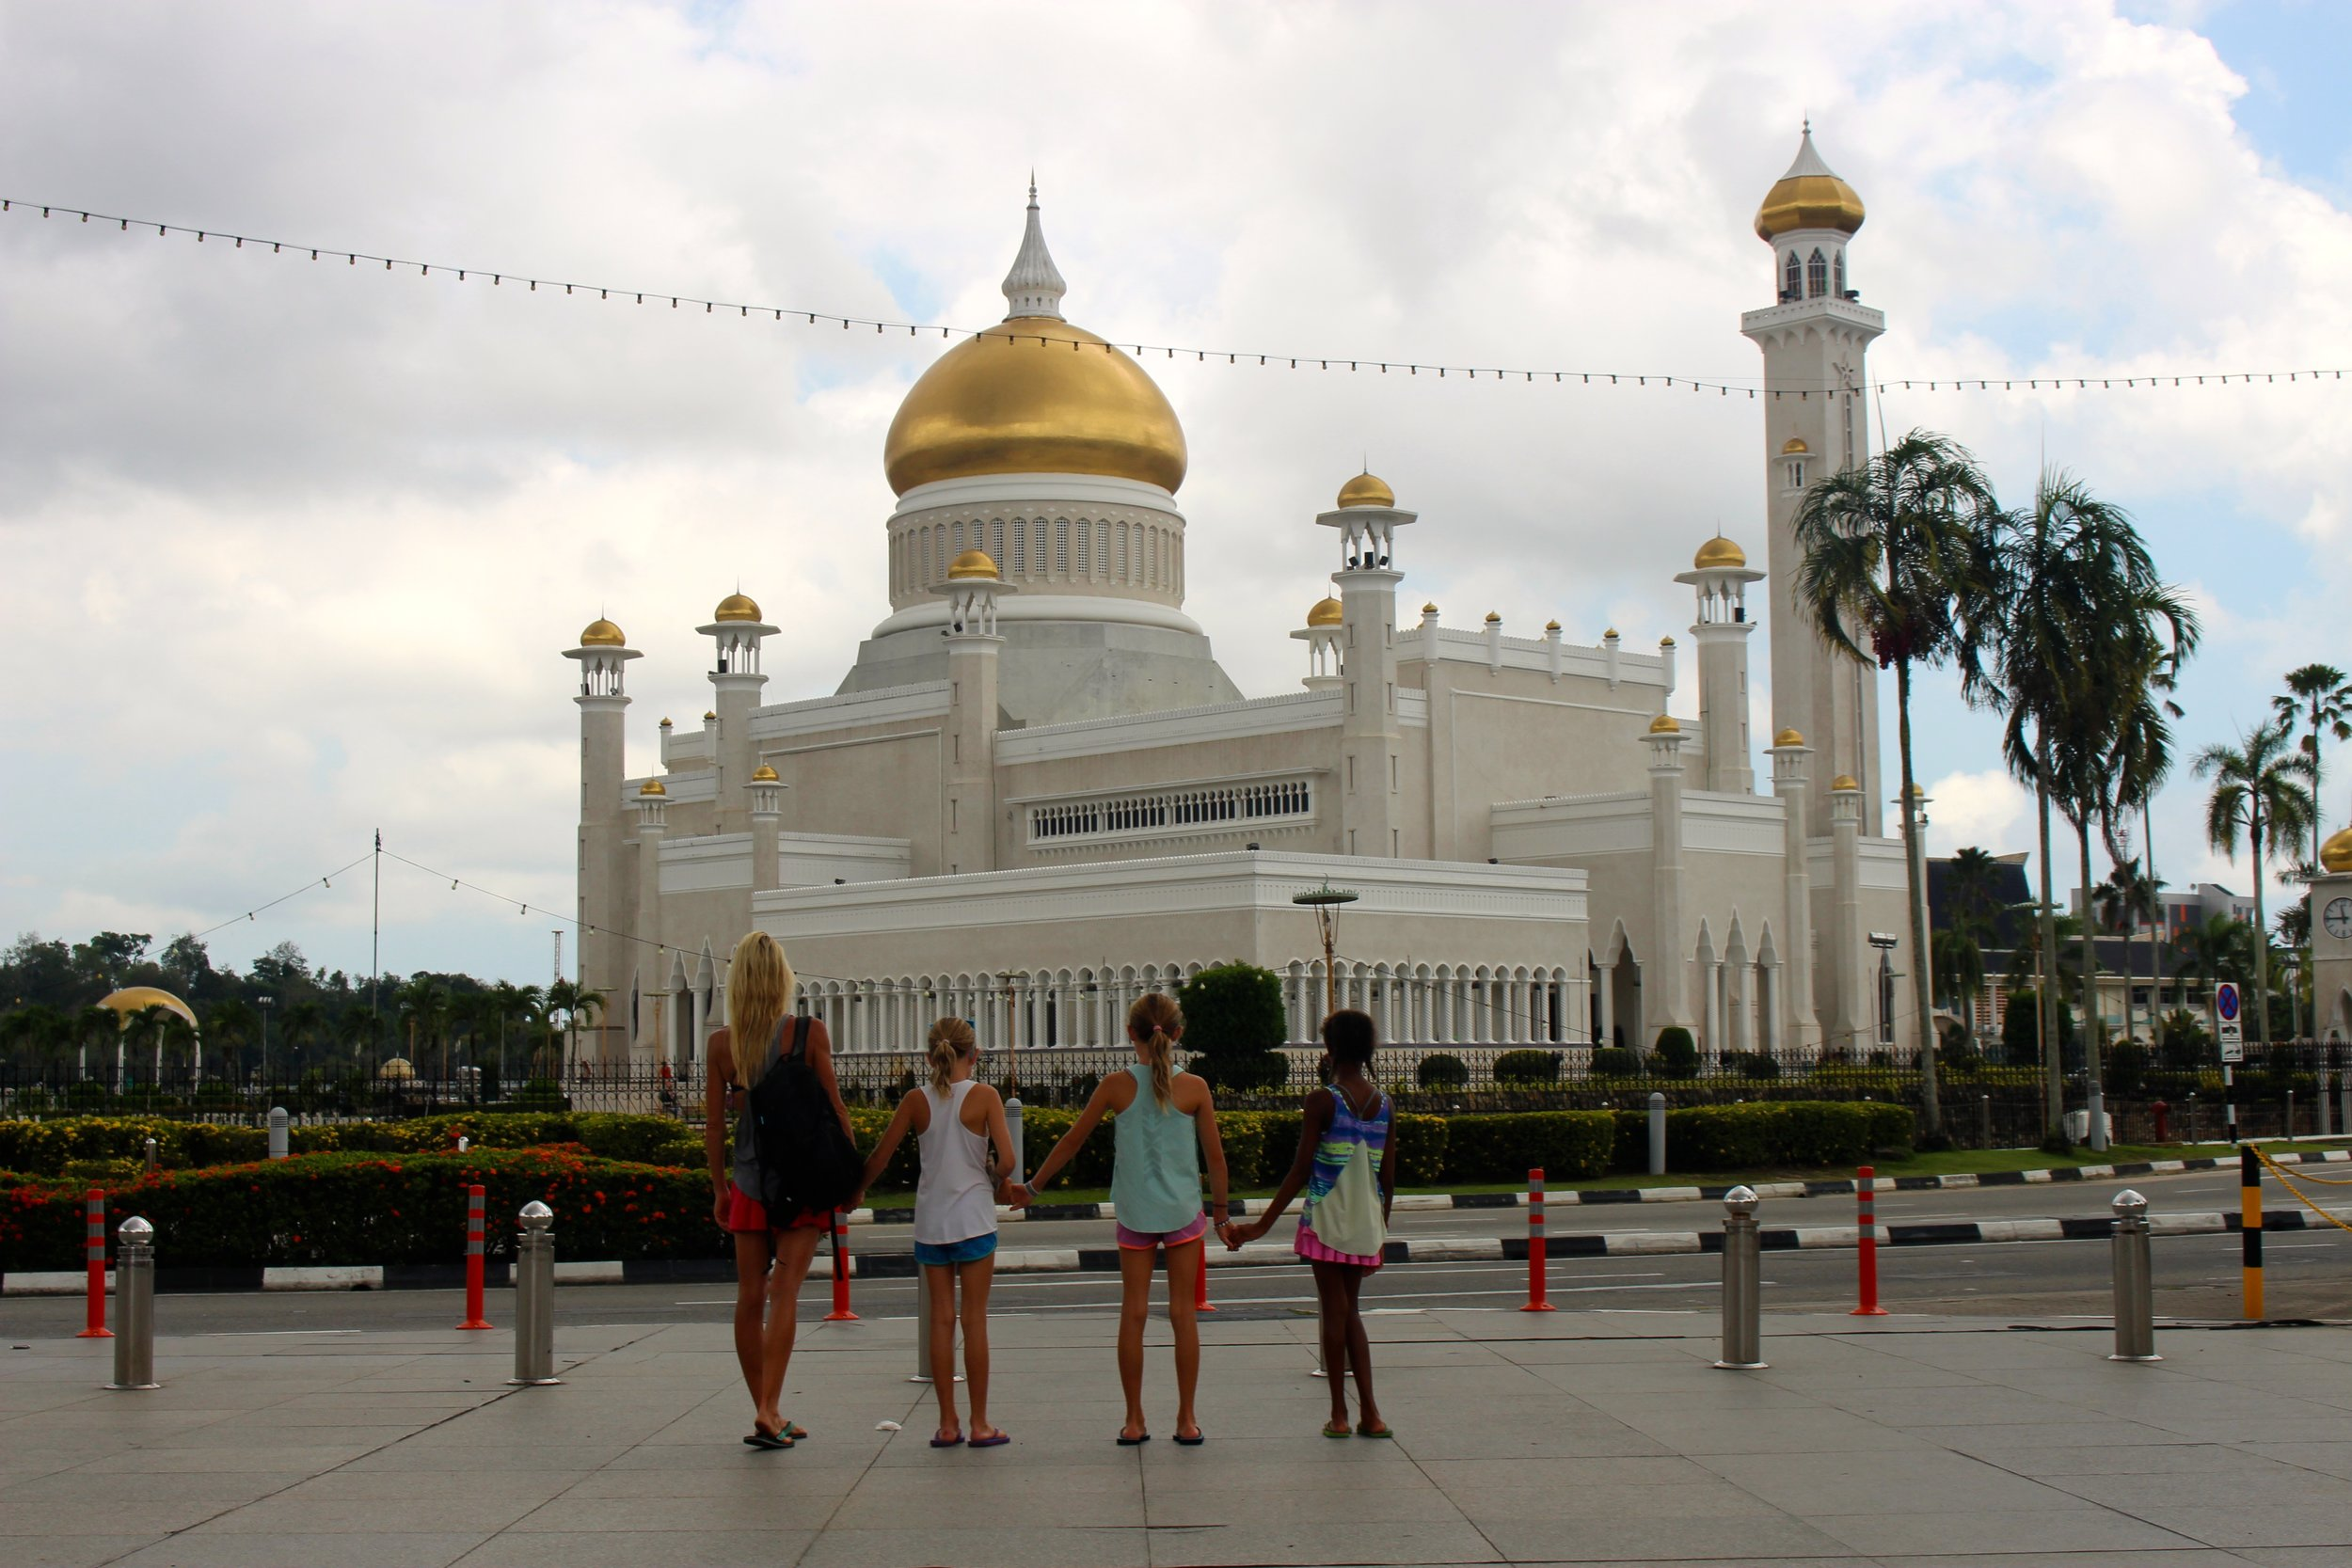 During our brief time in Brunei, we visited the Omar Ali Saifuddien Mosque. The mosque is often considered as one of the most beautiful mosques in the Asia Pacific, is a place of worship for the Muslim community, and a major historical site and a famous tourist attraction of Brunei. The mosque is named after Omar Ali Saifudden, the 28th Sultan of Brunei.